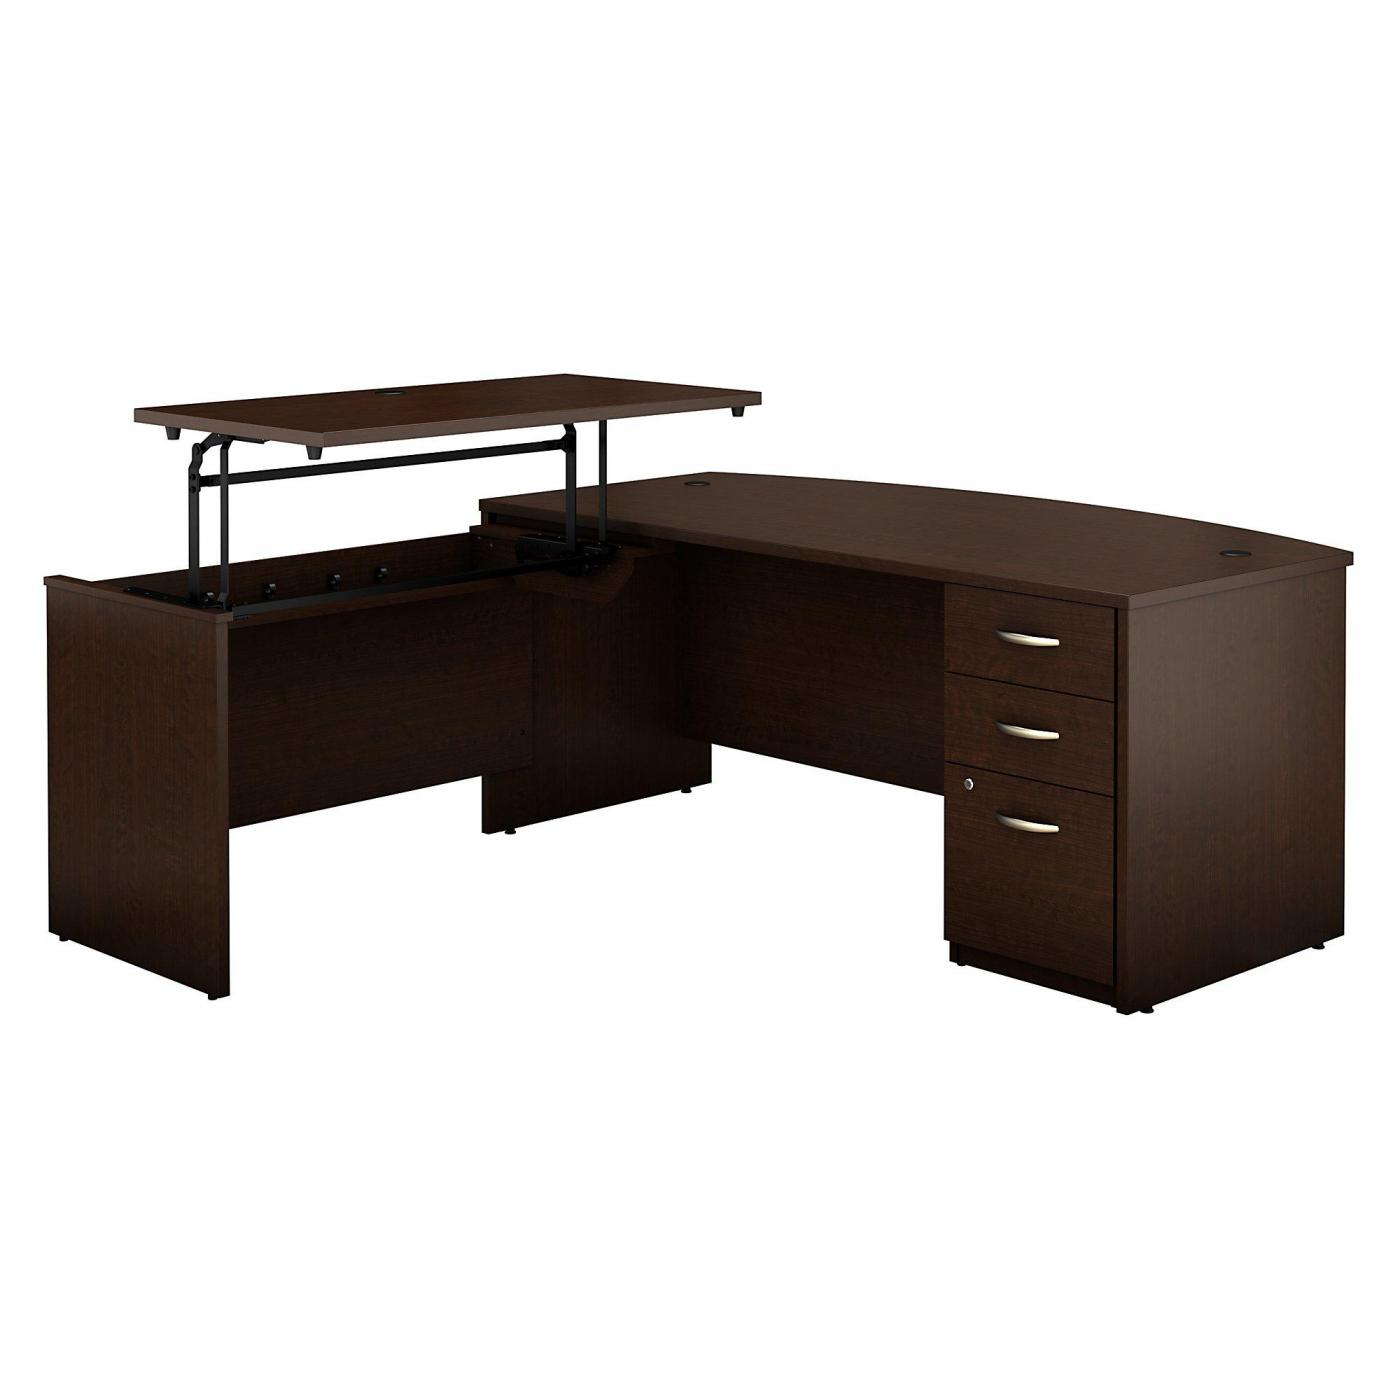 <font color=#c60><b>BUSH BUSINESS FURNITURE SERIES C ELITE 72W X 36D 3 POSITION SIT TO STAND BOW FRONT L SHAPED DESK WITH 3 DRAWER FILE CABINET. FREE SHIPPING. VIDEO:</font></b>